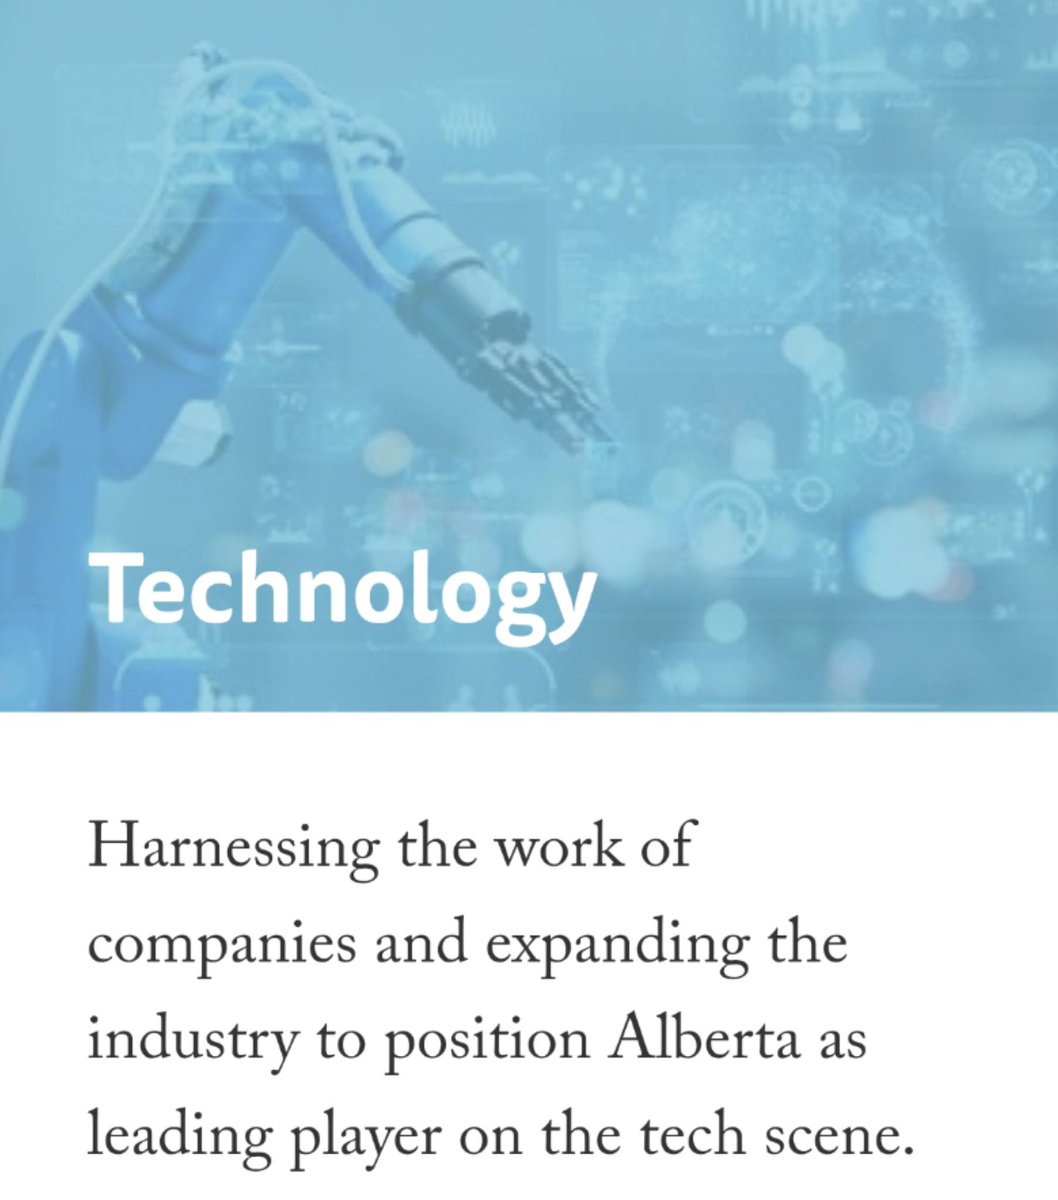 We are inviting you to participate  in our consultation on Tech Innovation with Deron Bilous, Critic for Economic Development & Innovation.  Join us Jan 27 from 6-730pm.   Register here⤵️ https://t.co/uSunlmXsnY  #abfuture #abpoli #ableg #abtechnoloy #technology #TechInnovation https://t.co/9Su7iQNXrn